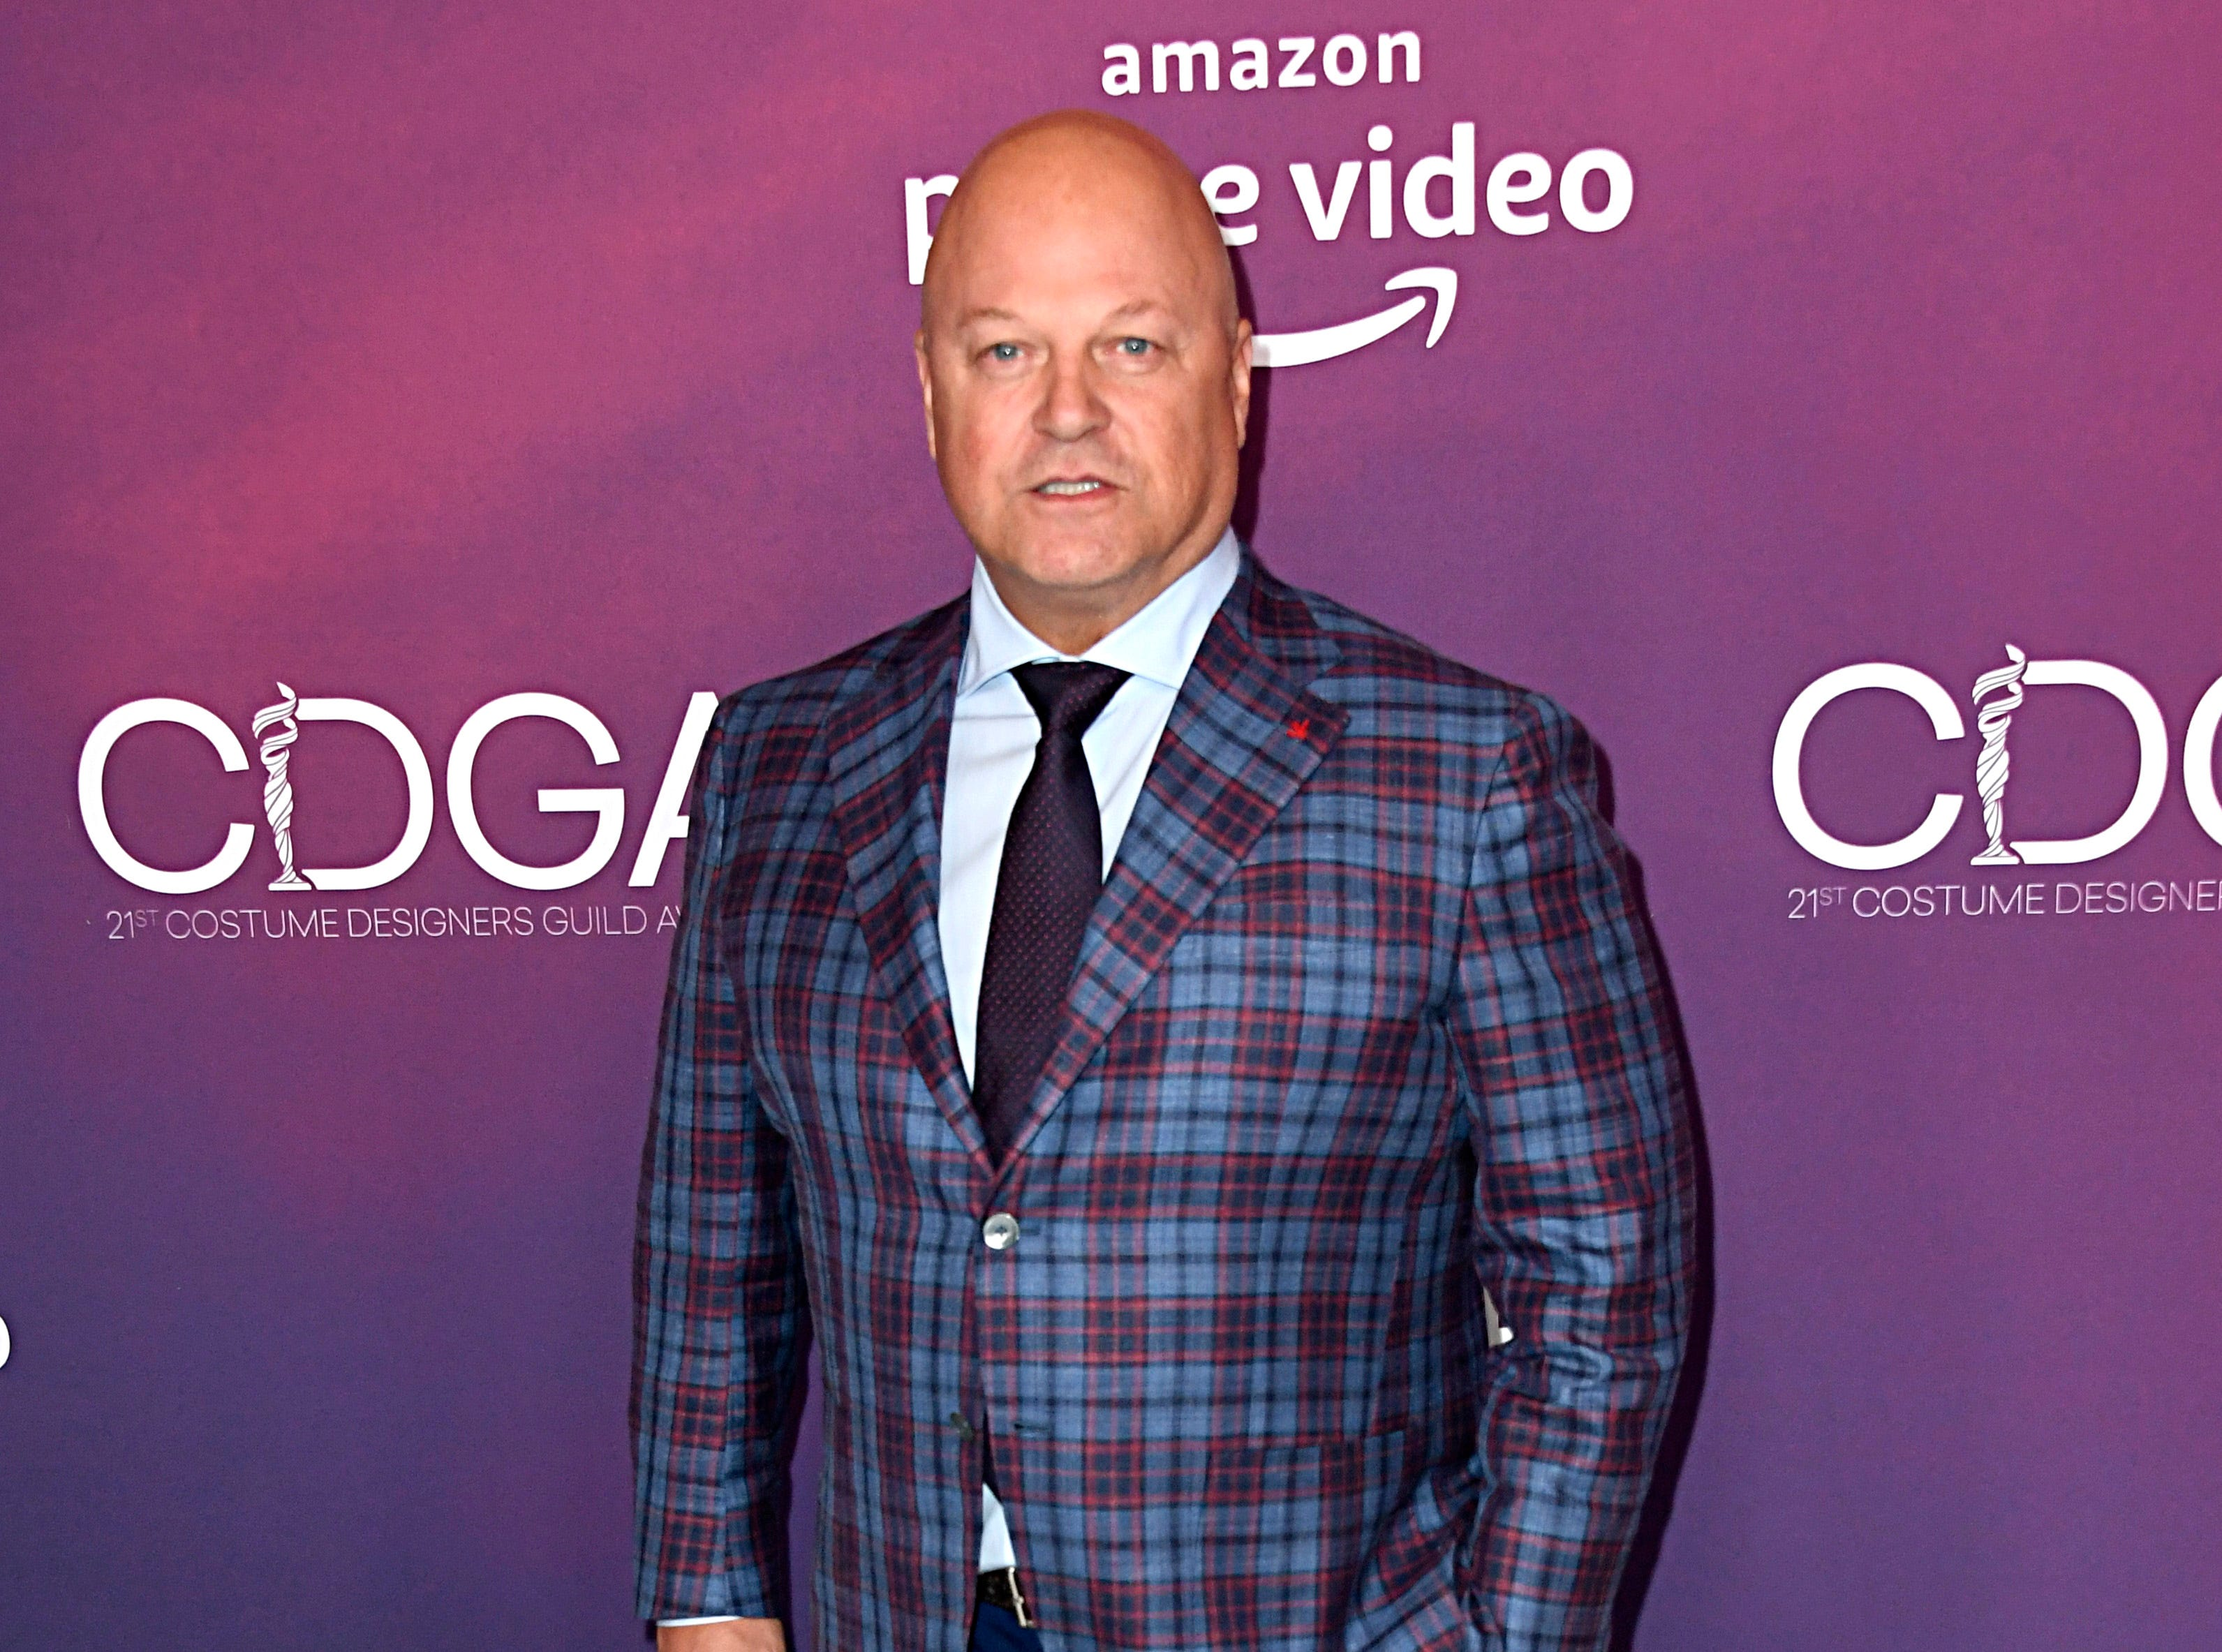 BEVERLY HILLS, CALIFORNIA - FEBRUARY 19: Michael Chiklis attends The 21st CDGA (Costume Designers Guild Awards) at The Beverly Hilton Hotel on February 19, 2019 in Beverly Hills, California. (Photo by Frazer Harrison/Getty Images) ORG XMIT: 775282683 ORIG FILE ID: 1130831167